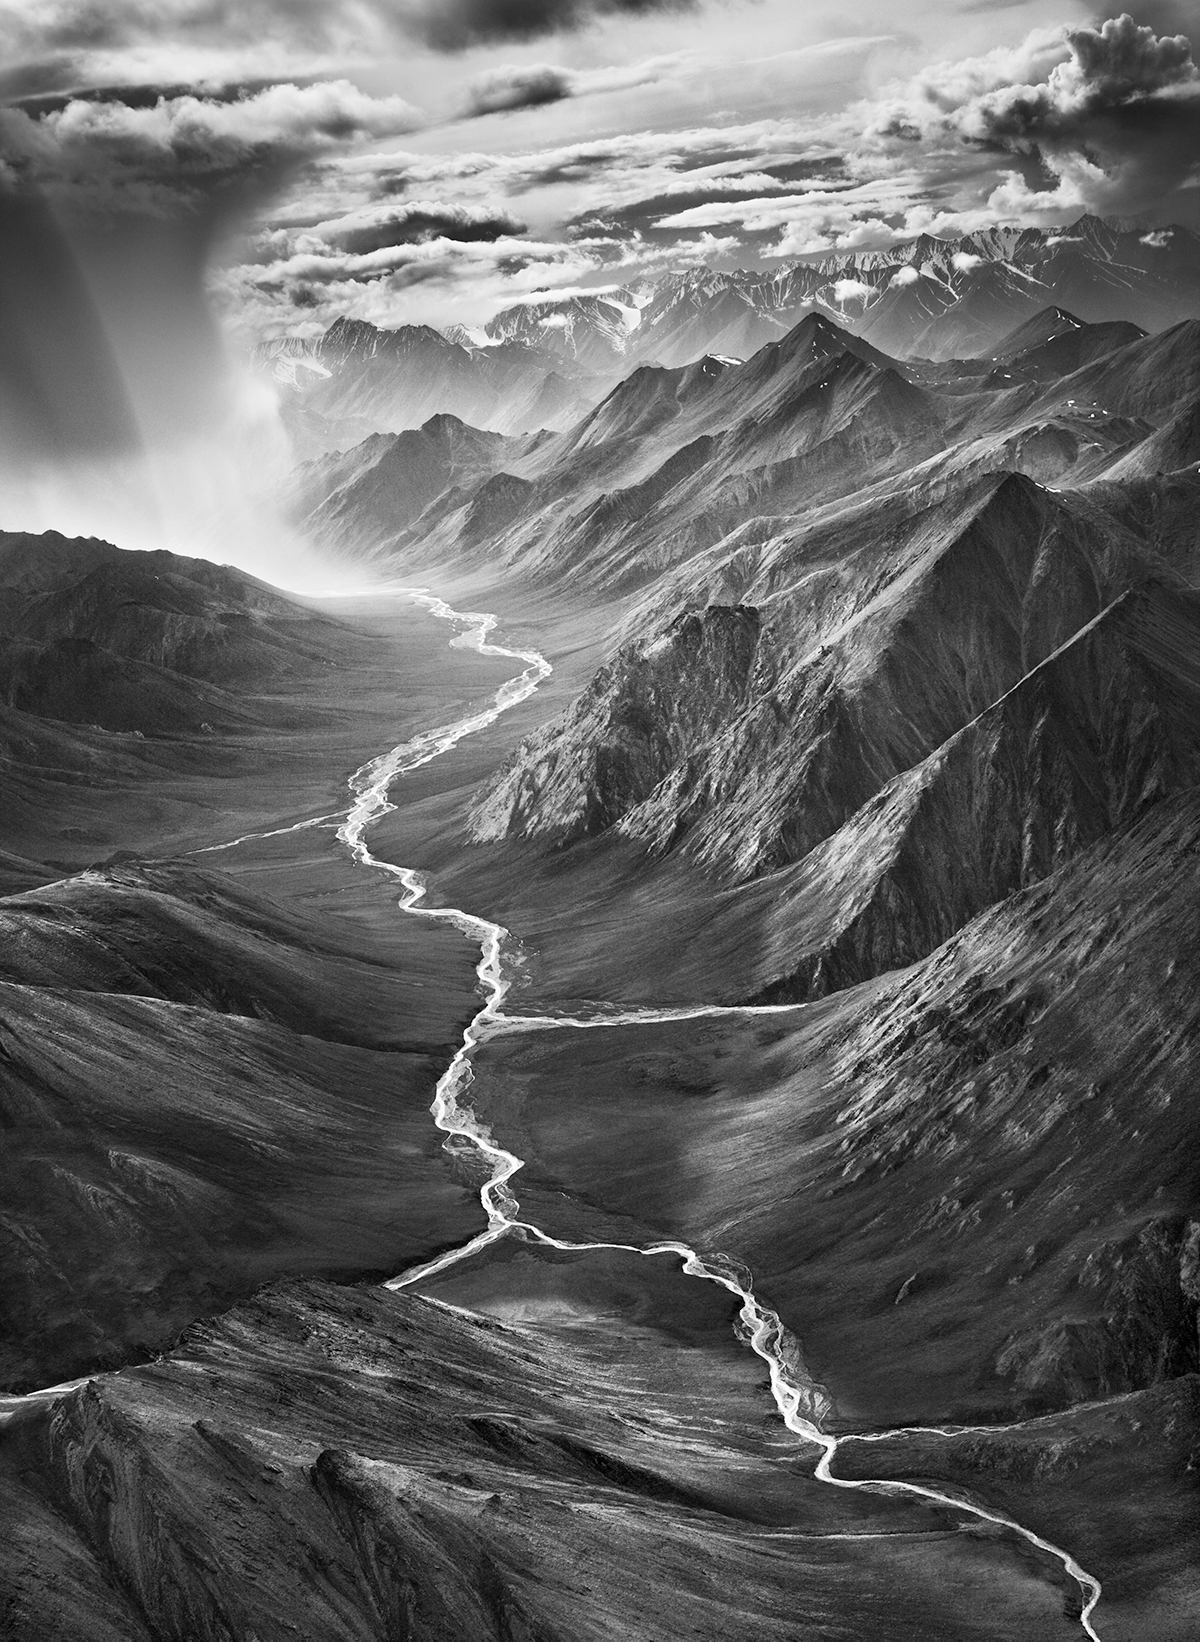 A photograph of a mountain range and rivers in Alaska.